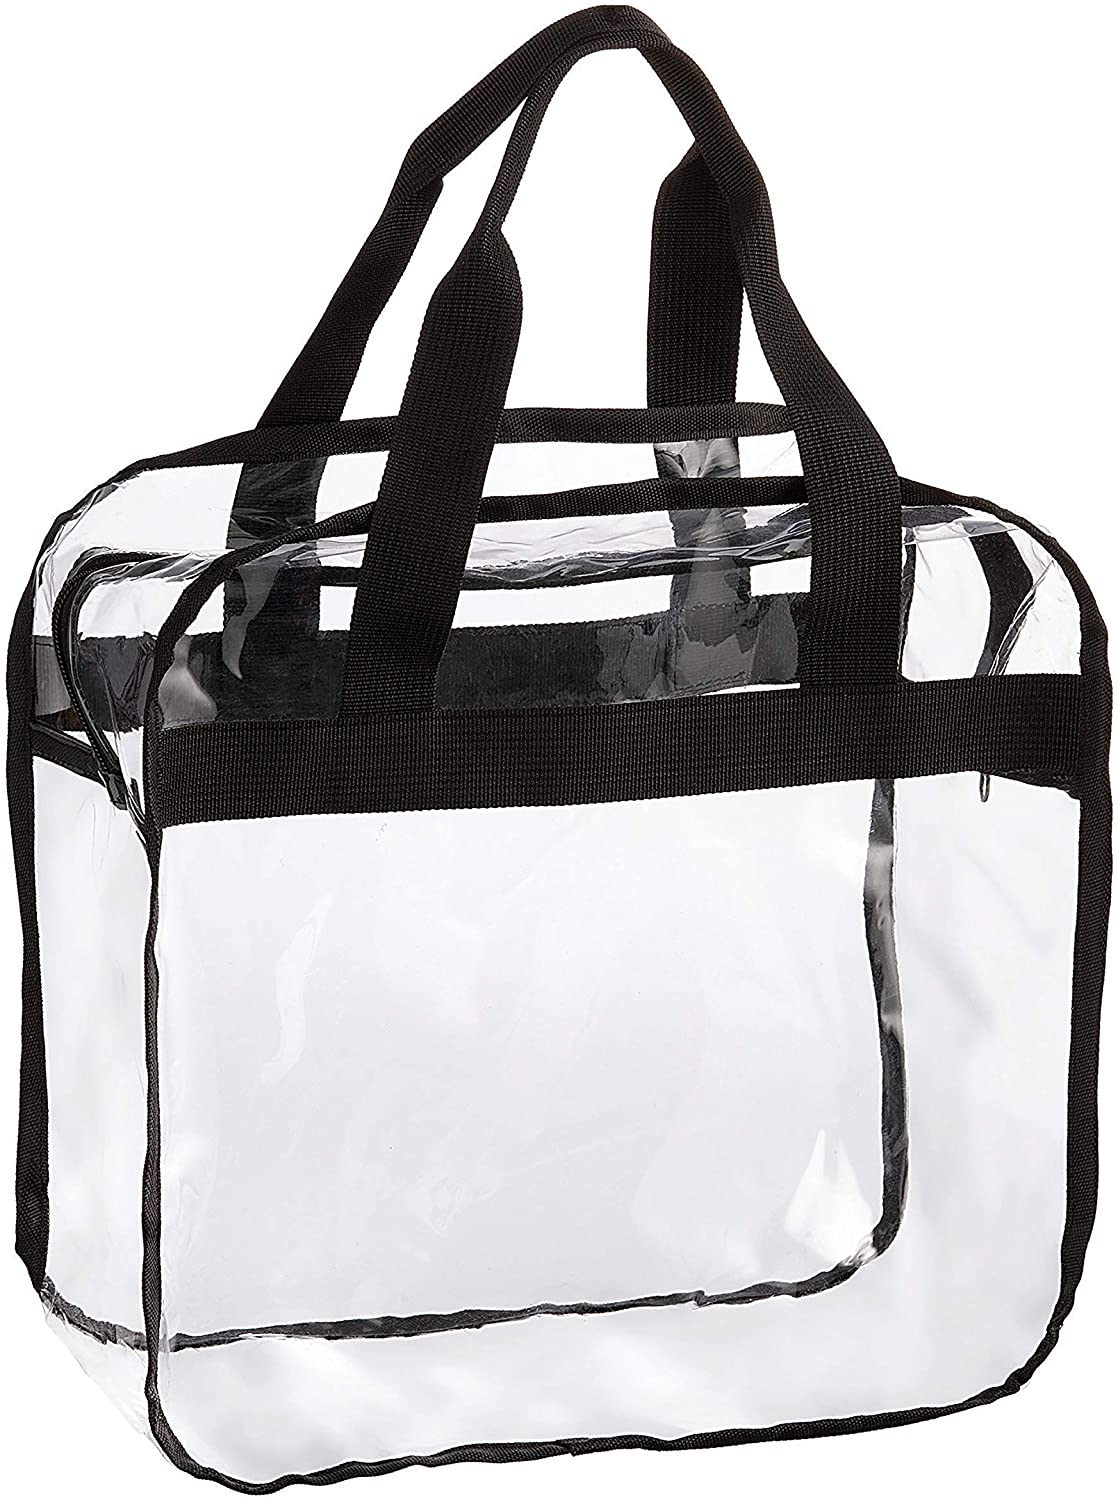 Darice Tote Bag with Zip-Top: Clear, PVC, 12 x 12 Inches